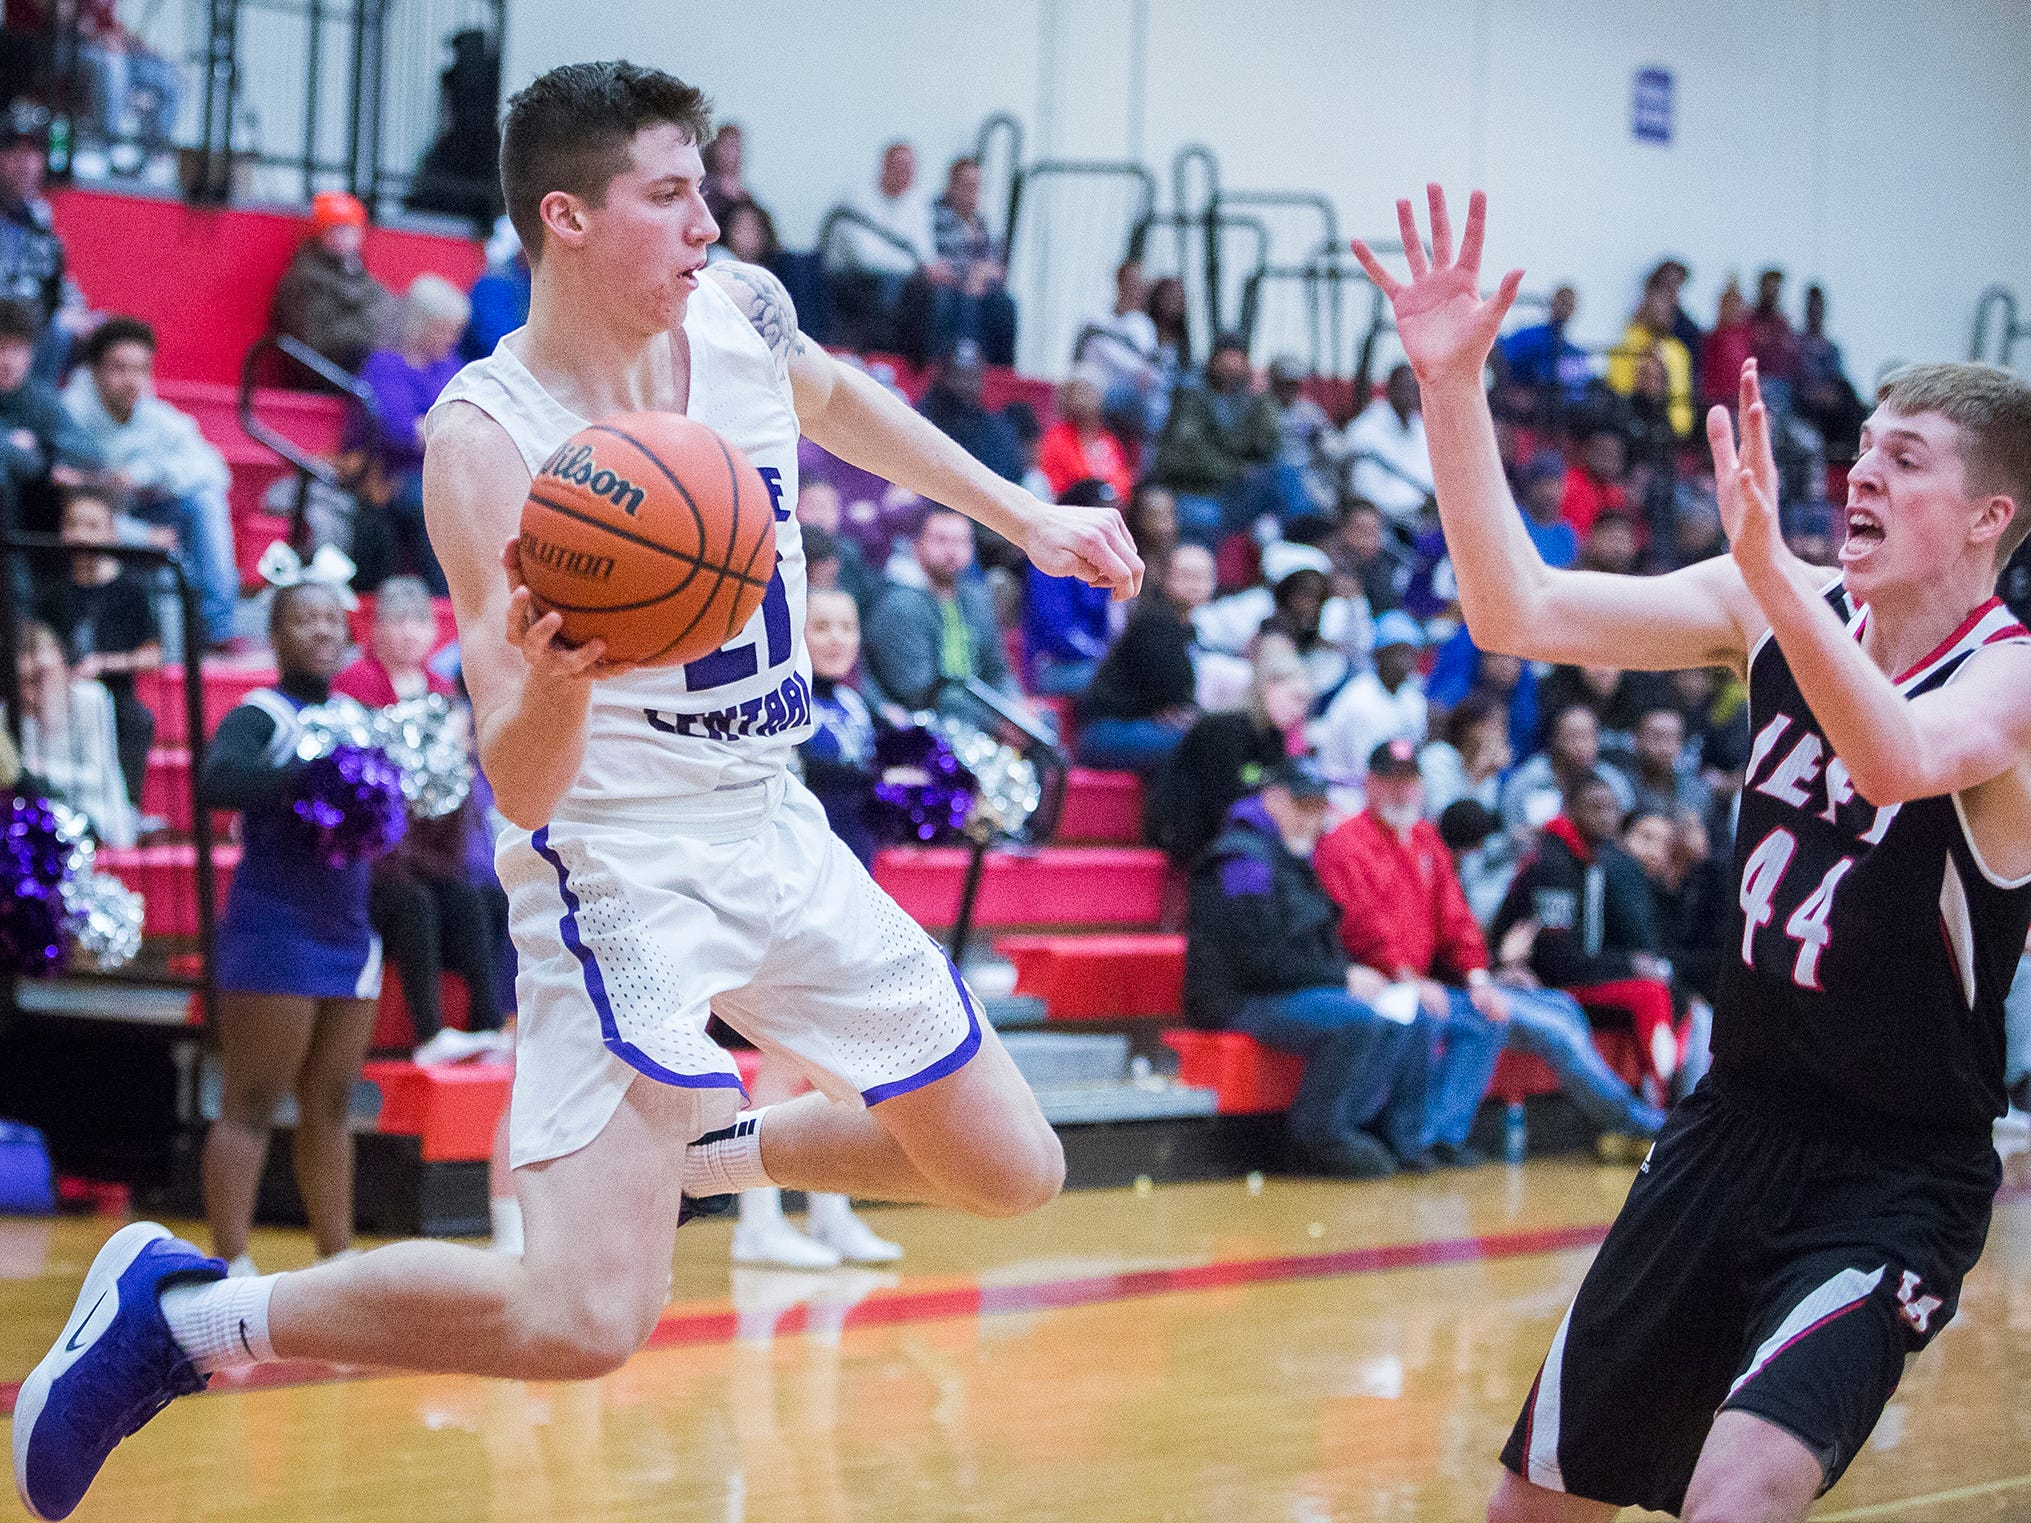 Central's Dylan Stafford looks to pass against Lafayette Jefferson's defense during their game at Southside Middle School Friday, Jan. 4, 2019.